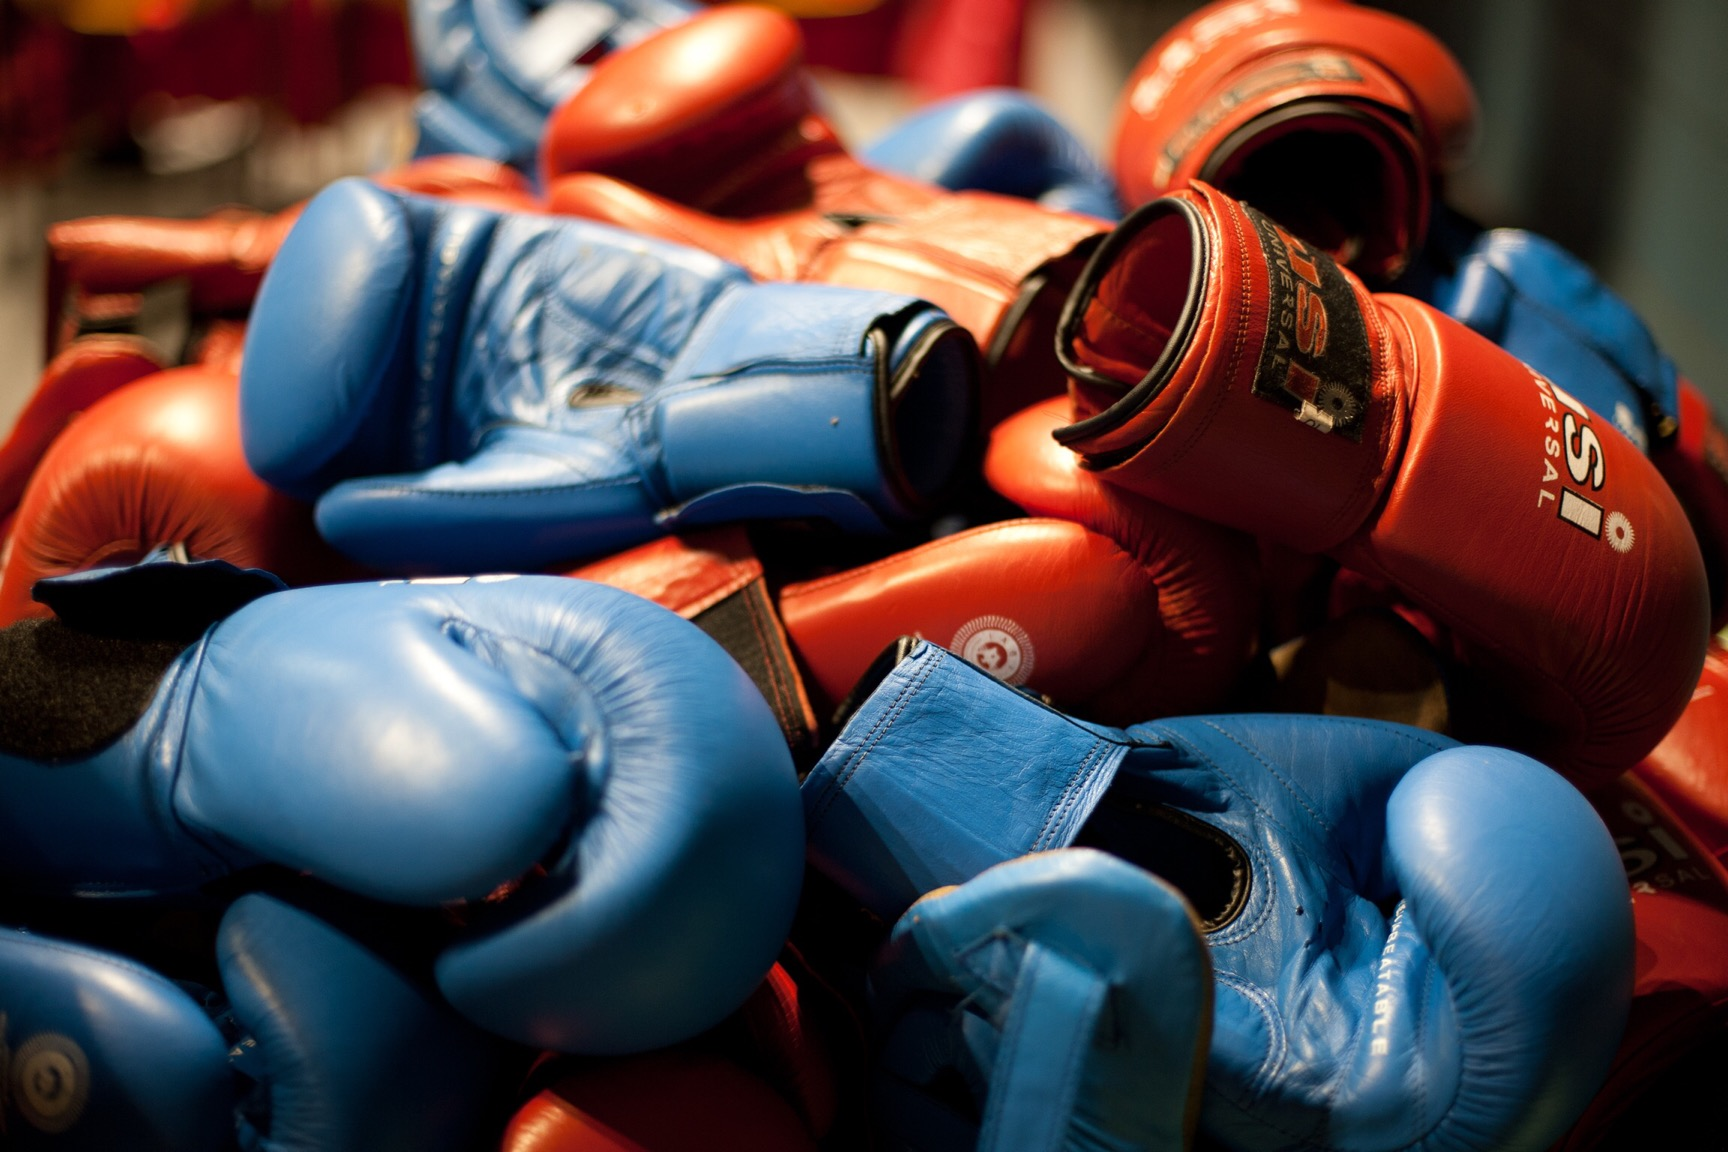 Boxing gloves (© Lee Bazalgette)